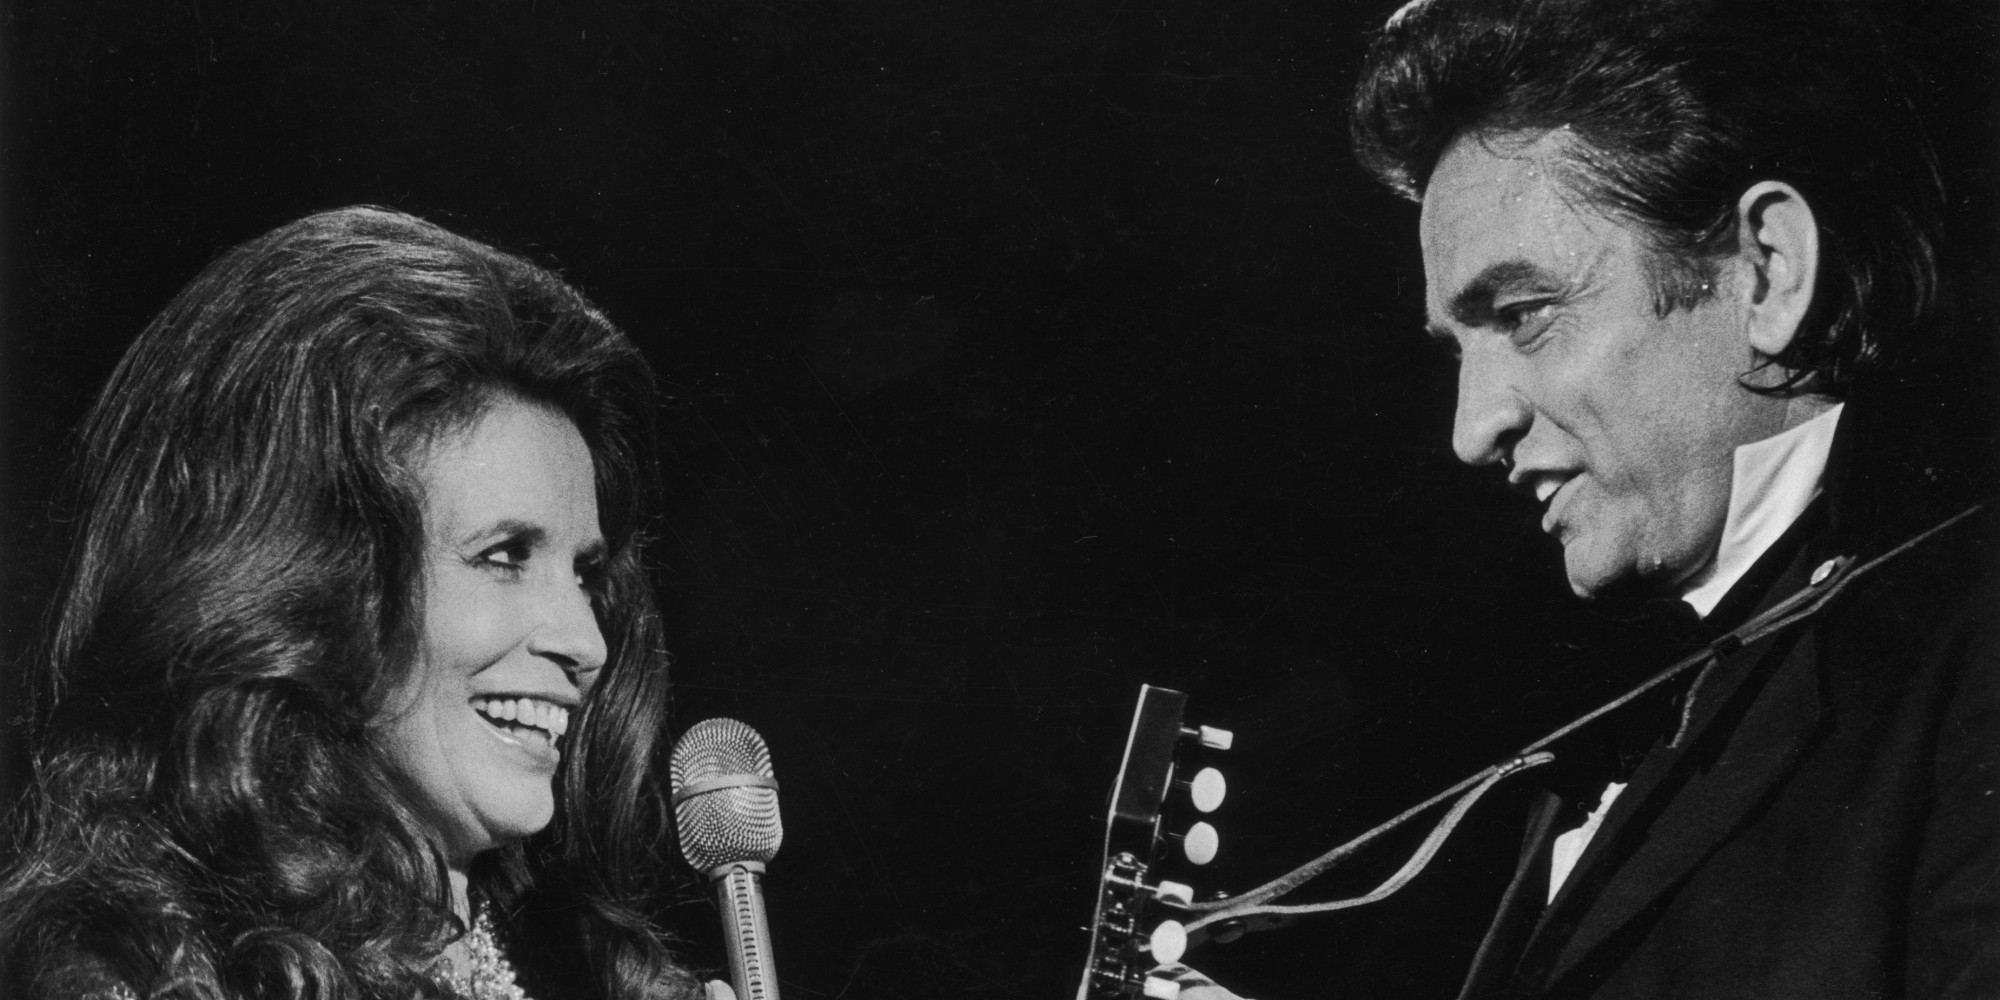 Johnny Cash 39 S Love Letter To June Carter Cash Is One For